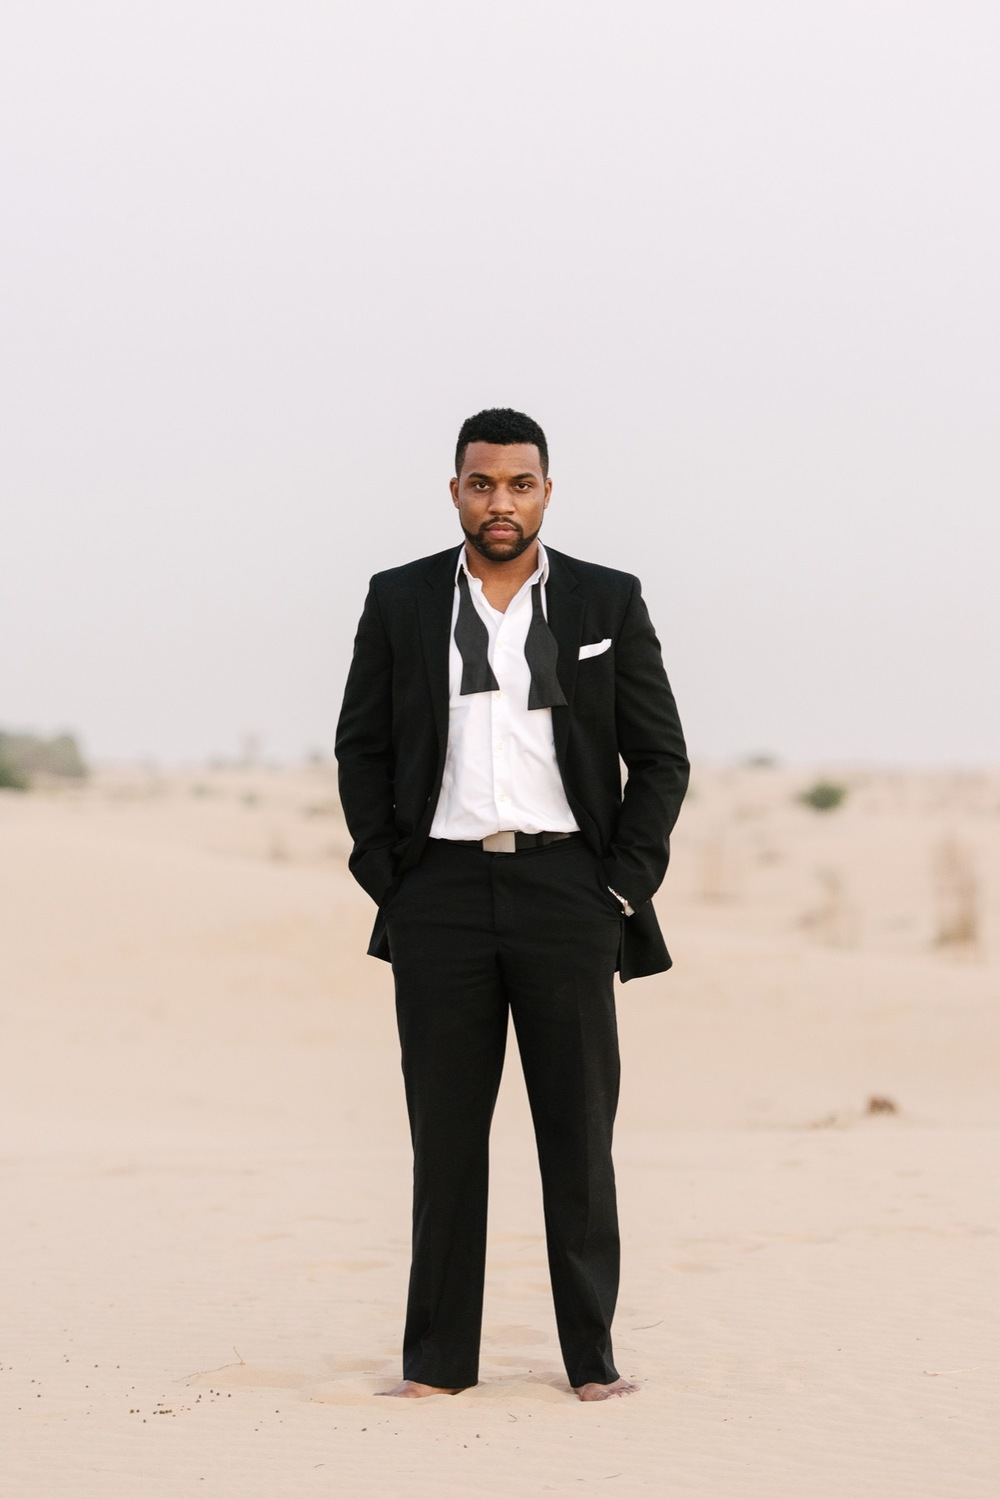 Romantic Couples Shoot in Dubai Desert | Dubai Vacation Photographer